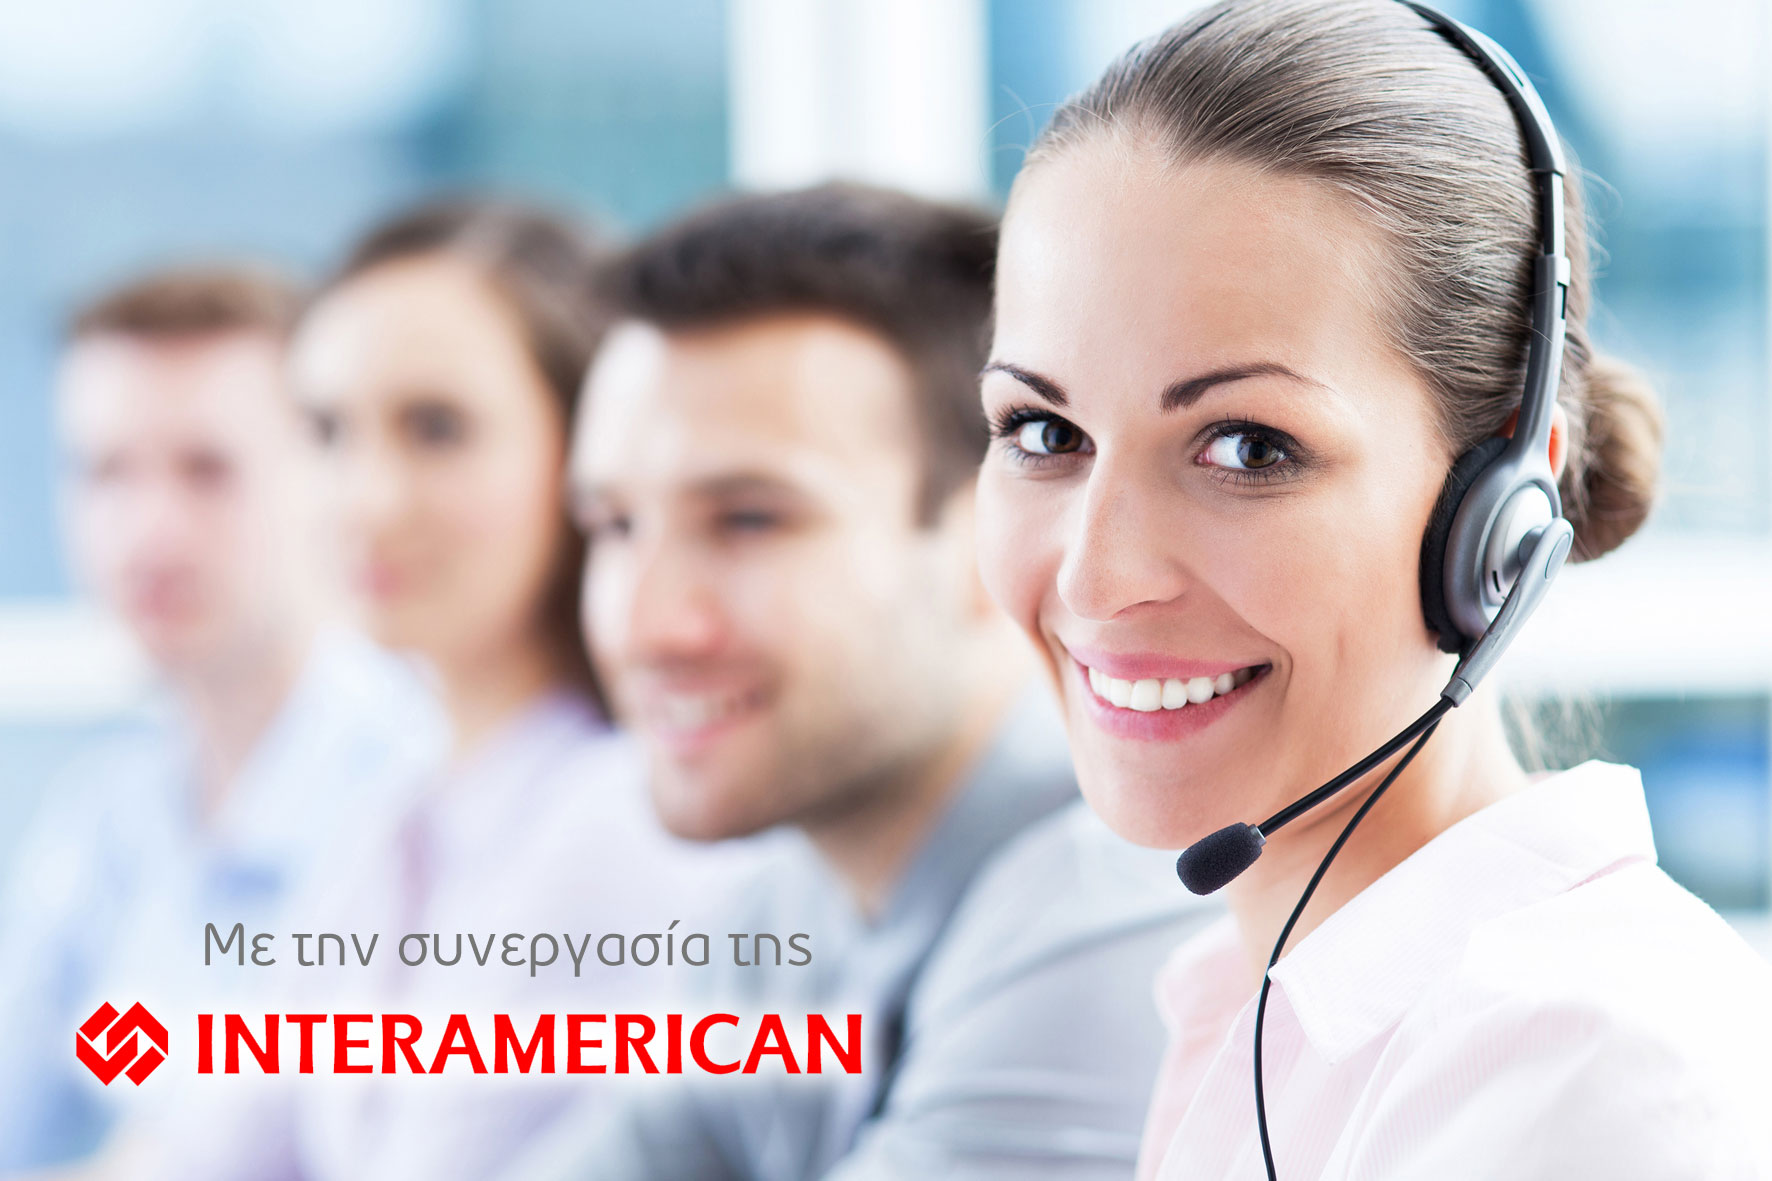 call-center-atlasmed.jpg